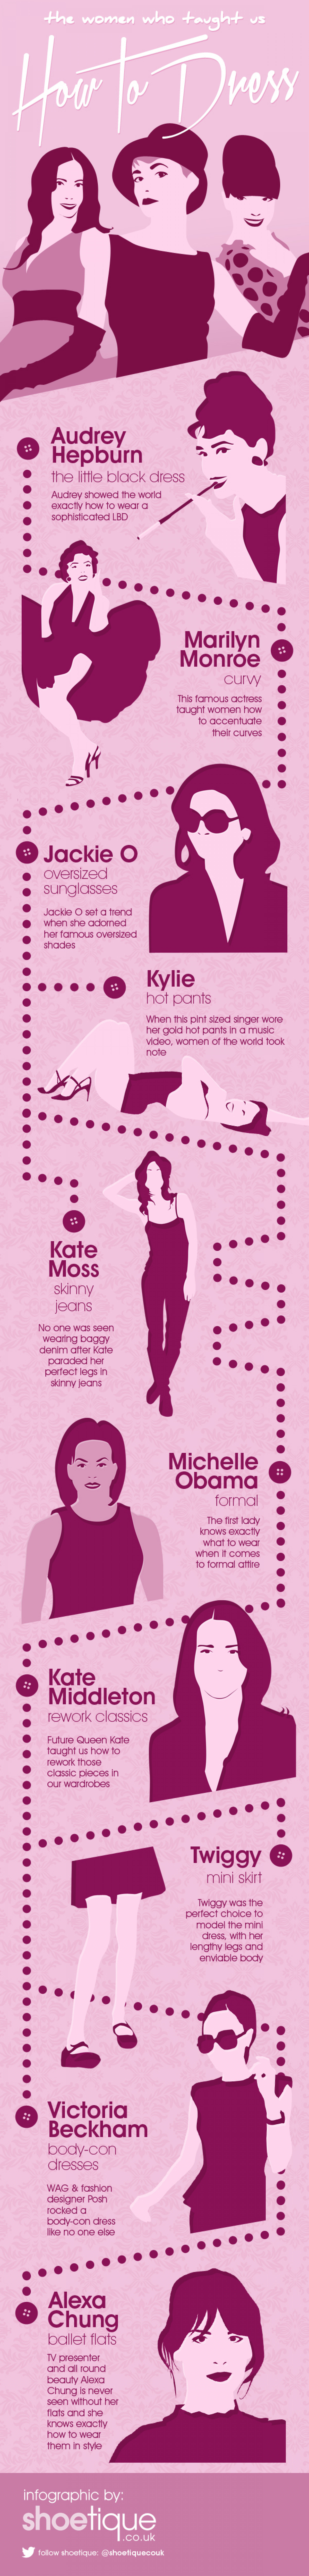 The Women That Taught Us How To Dress Infographic